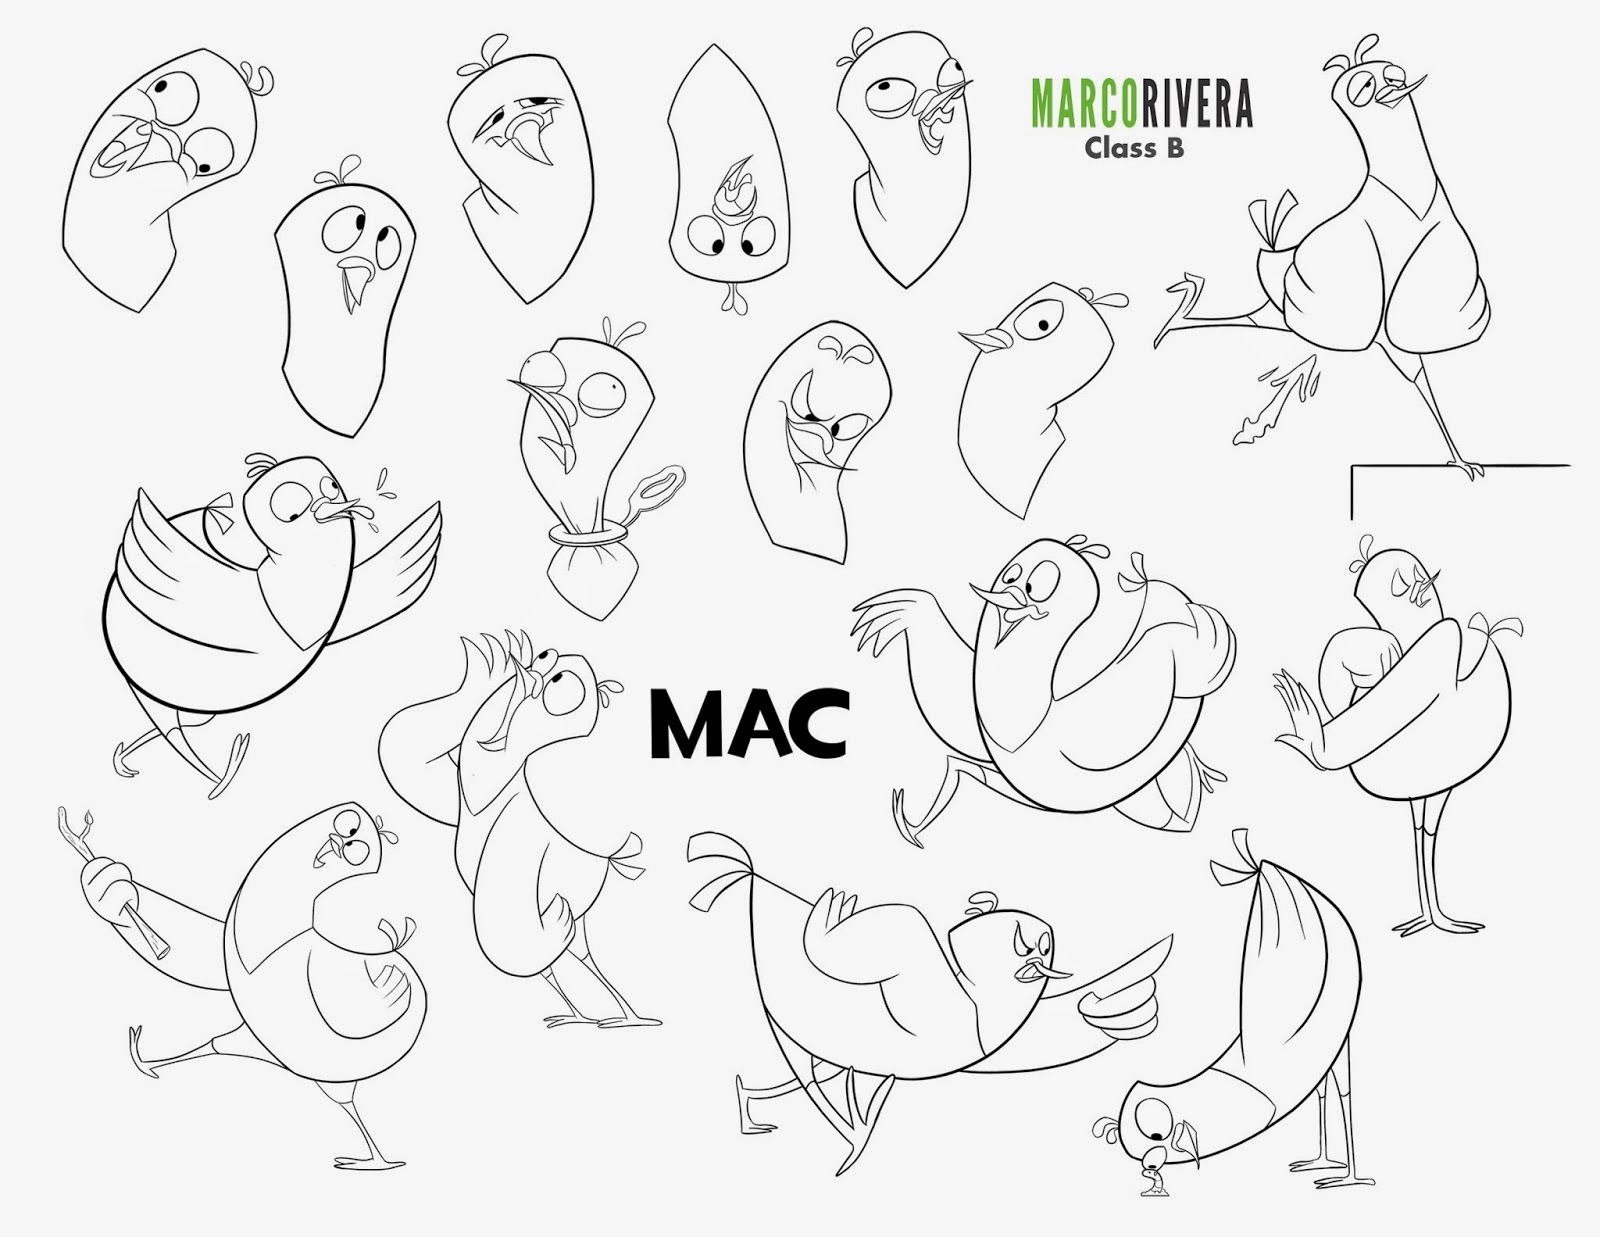 Apple Character Design : Art of marco rivera mac character design package